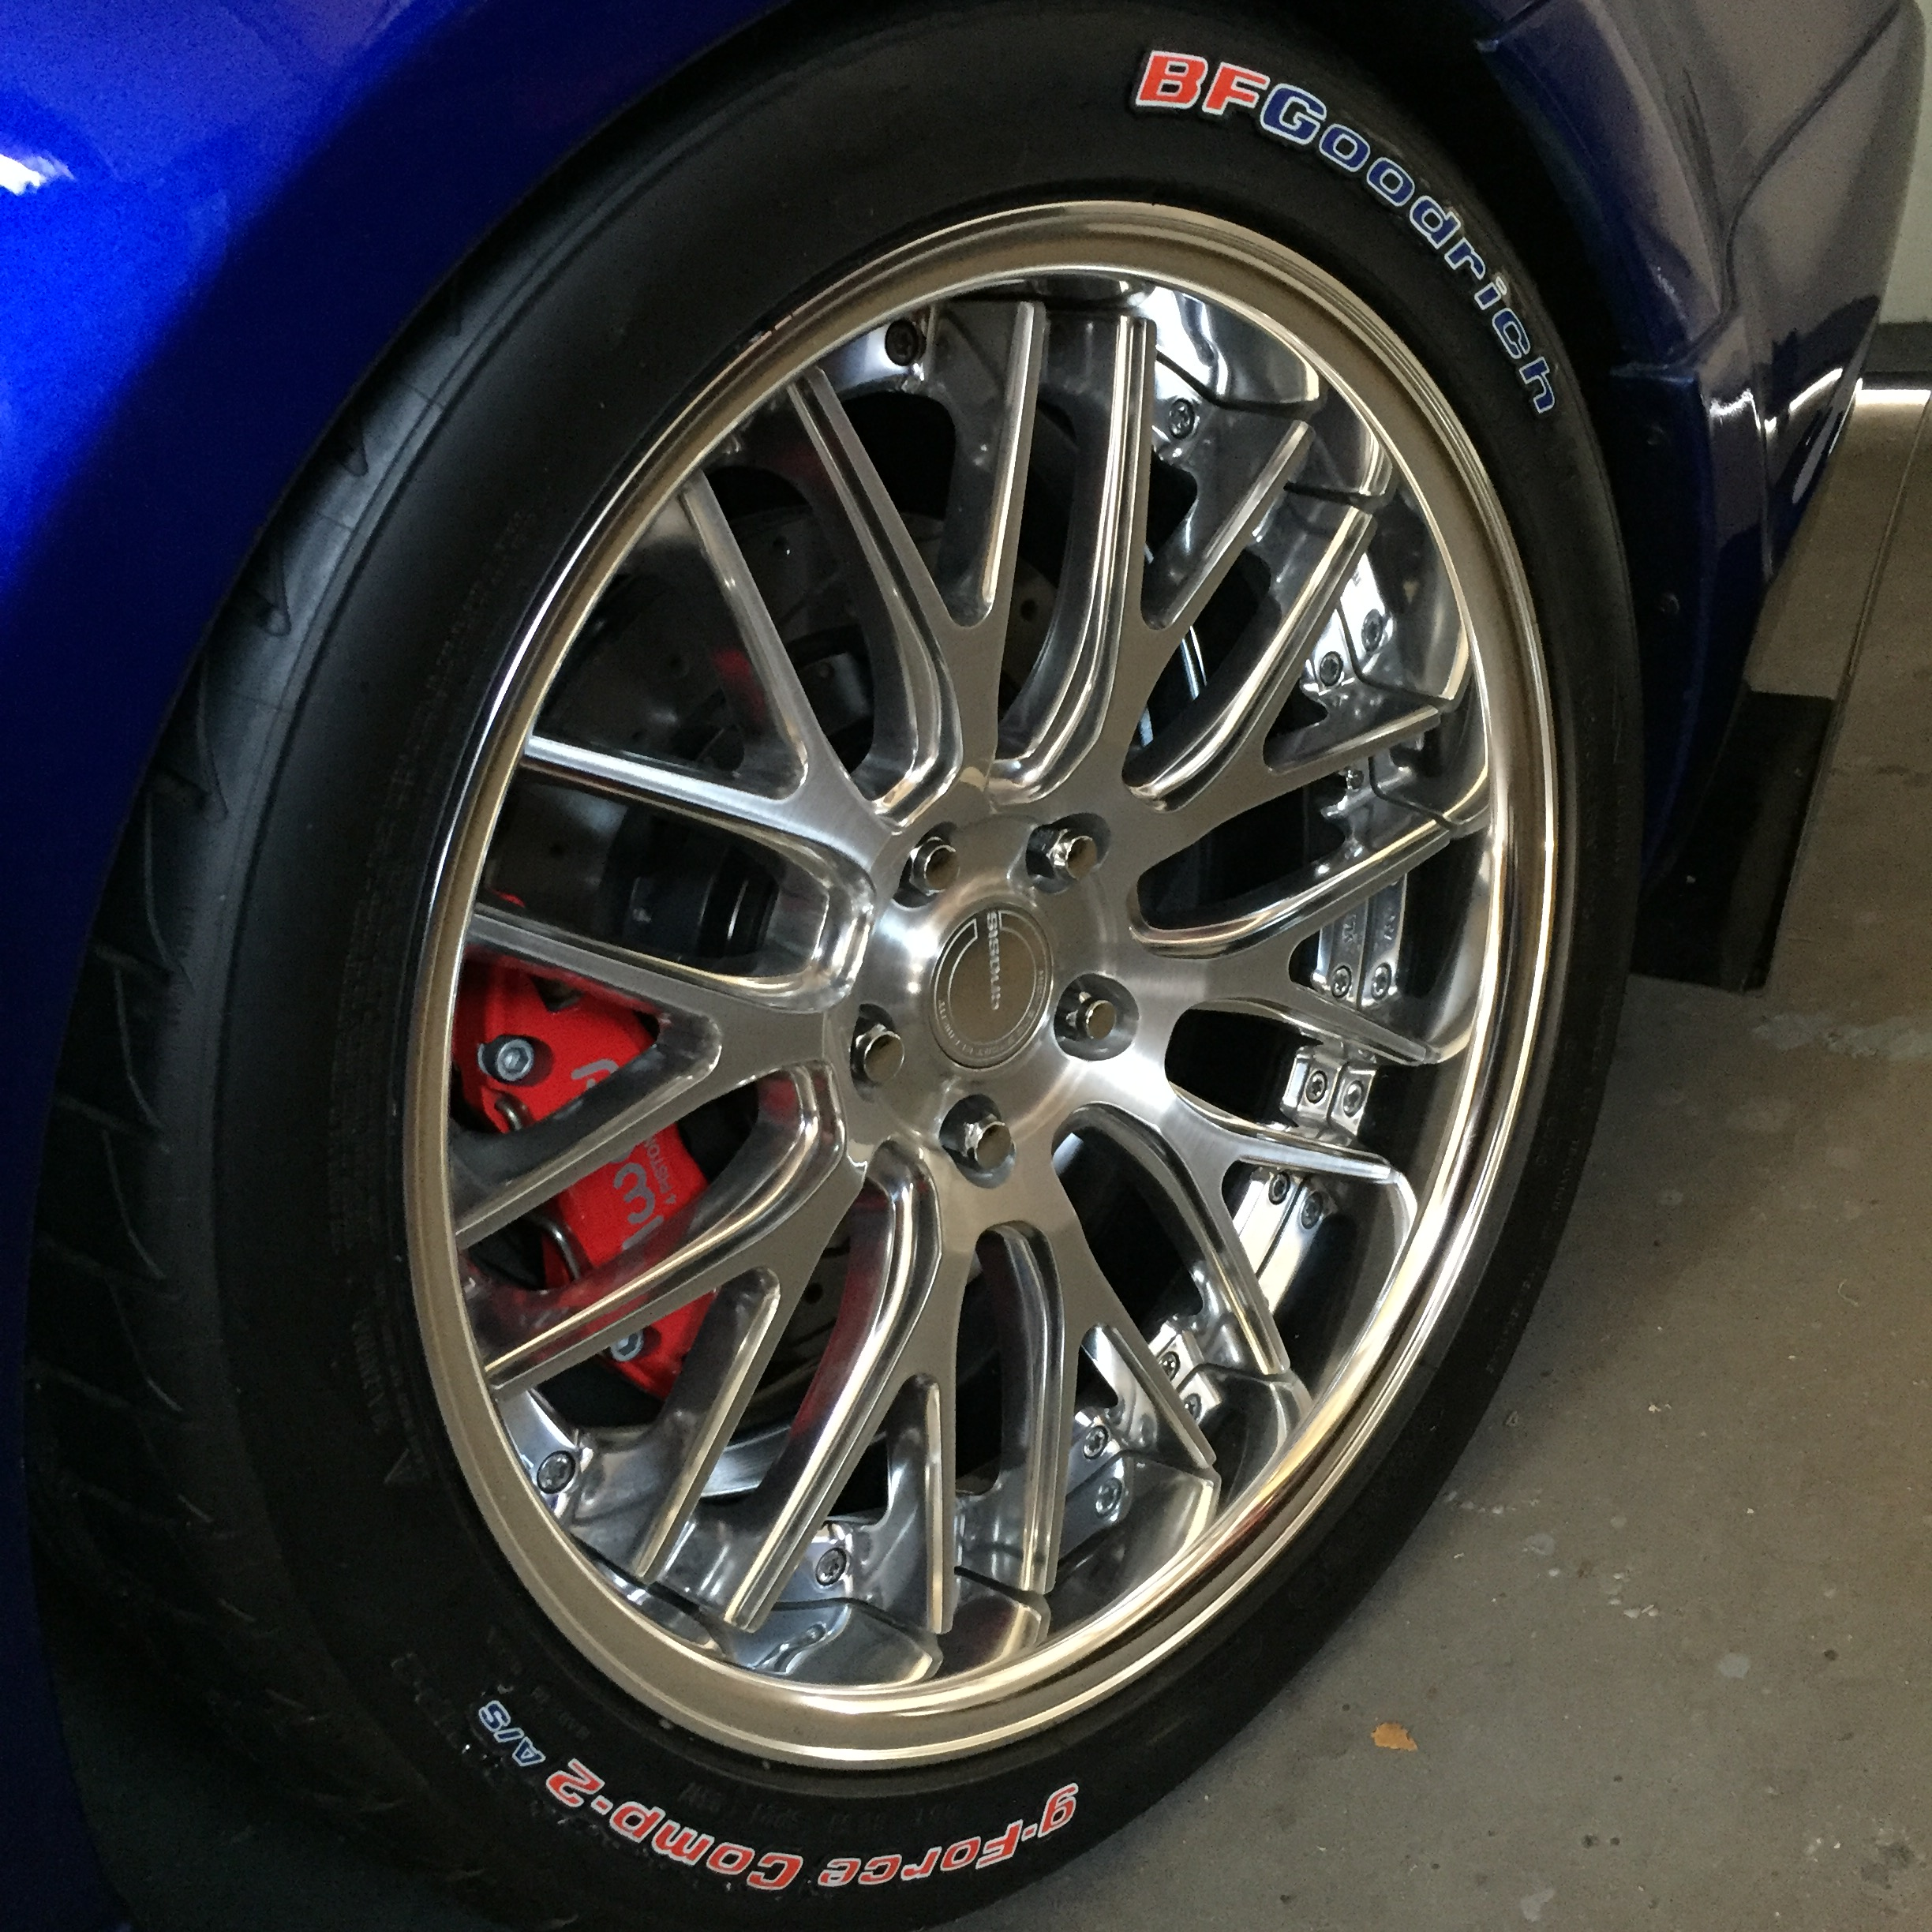 Official BFGoodrich Tire Letters | TIRE STICKERS .COM